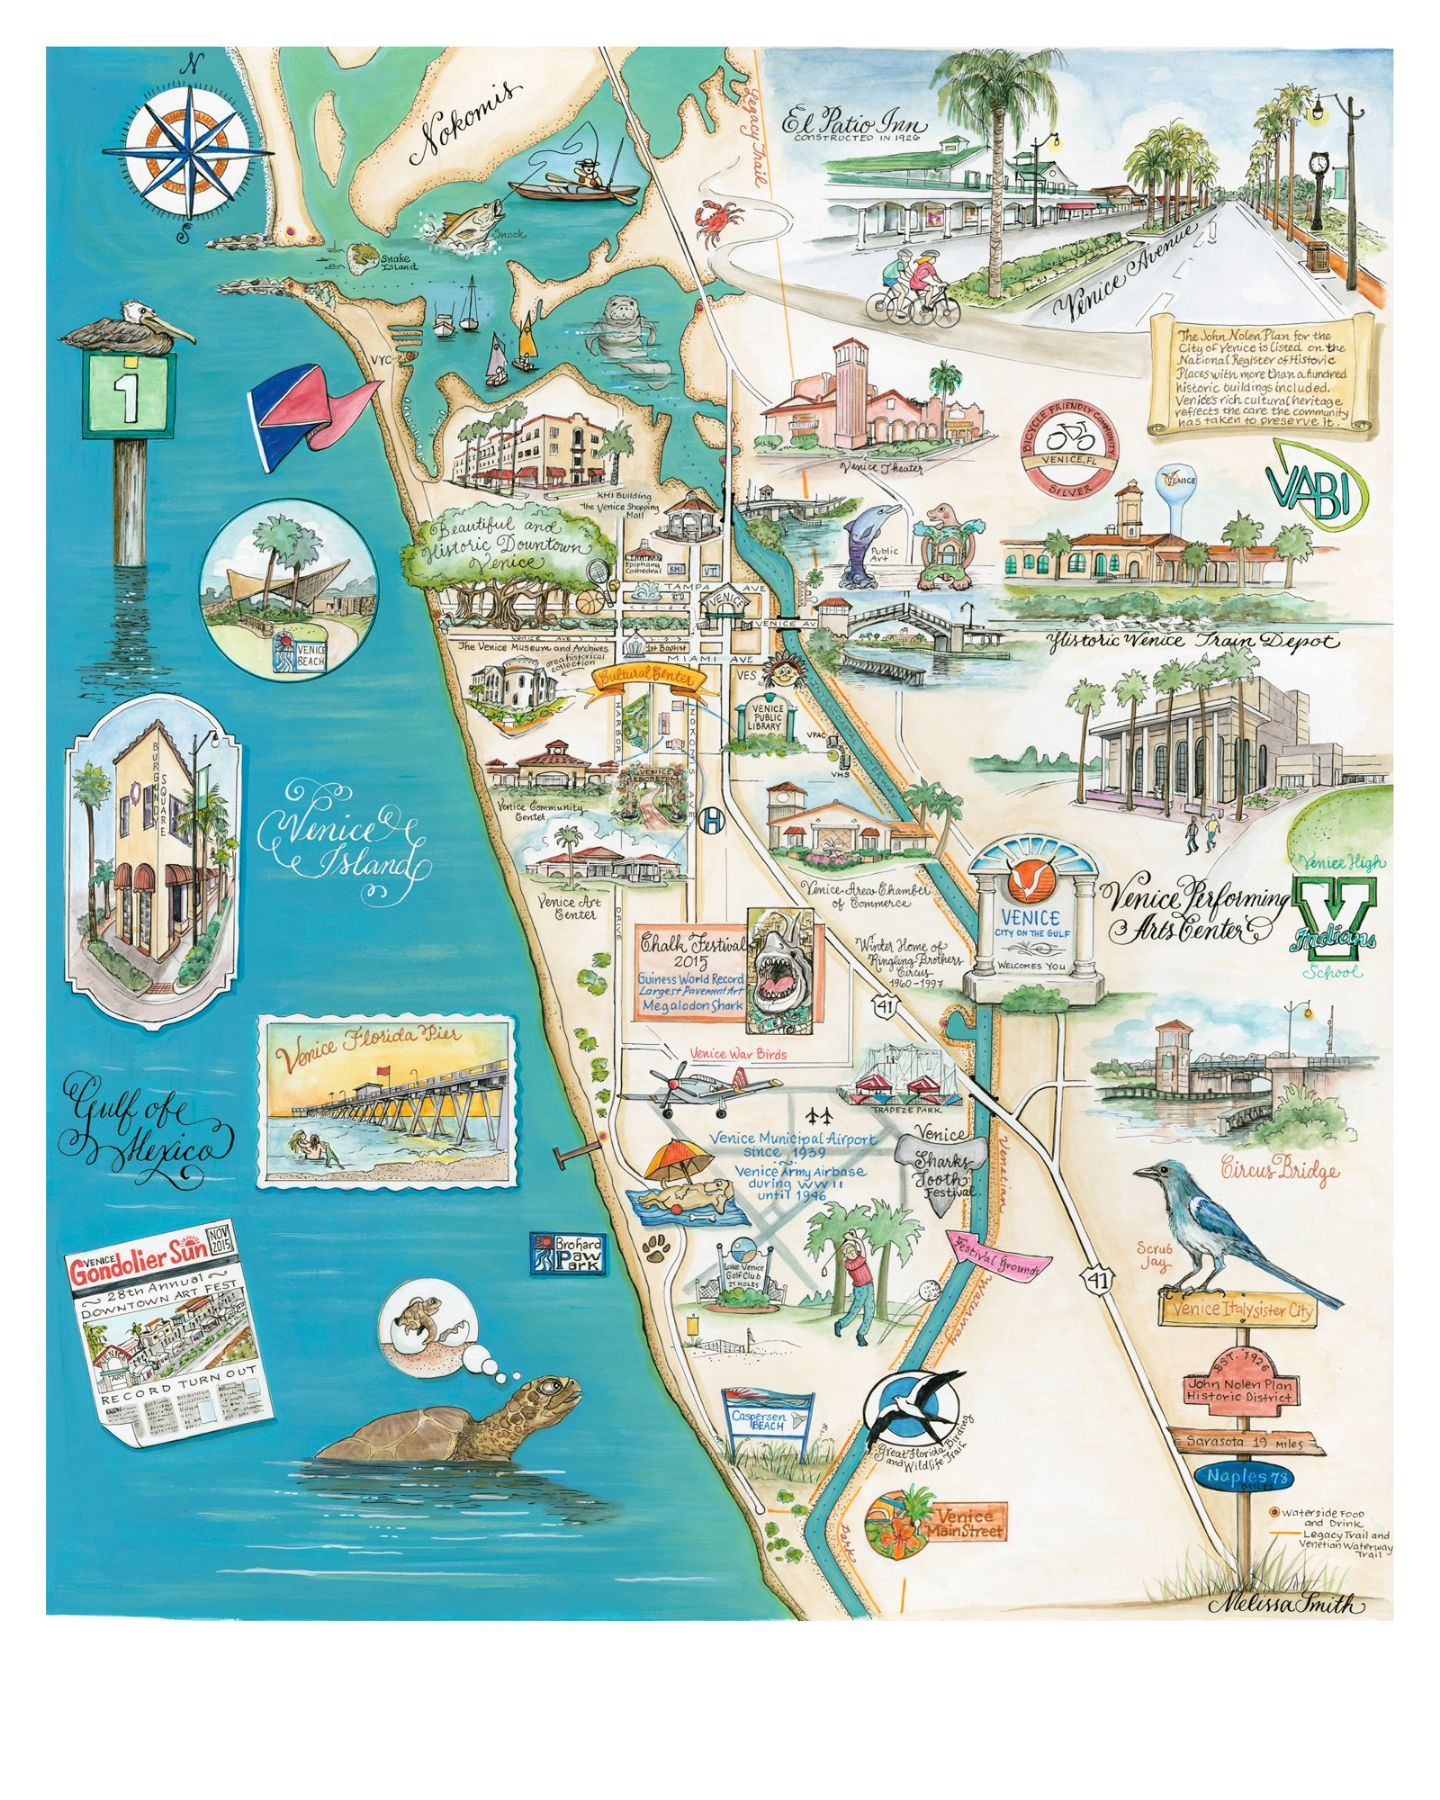 Venice, Florida Map - This Map Is One Of The Prettiest Maps I Have - Anna Maria Island In Florida Map